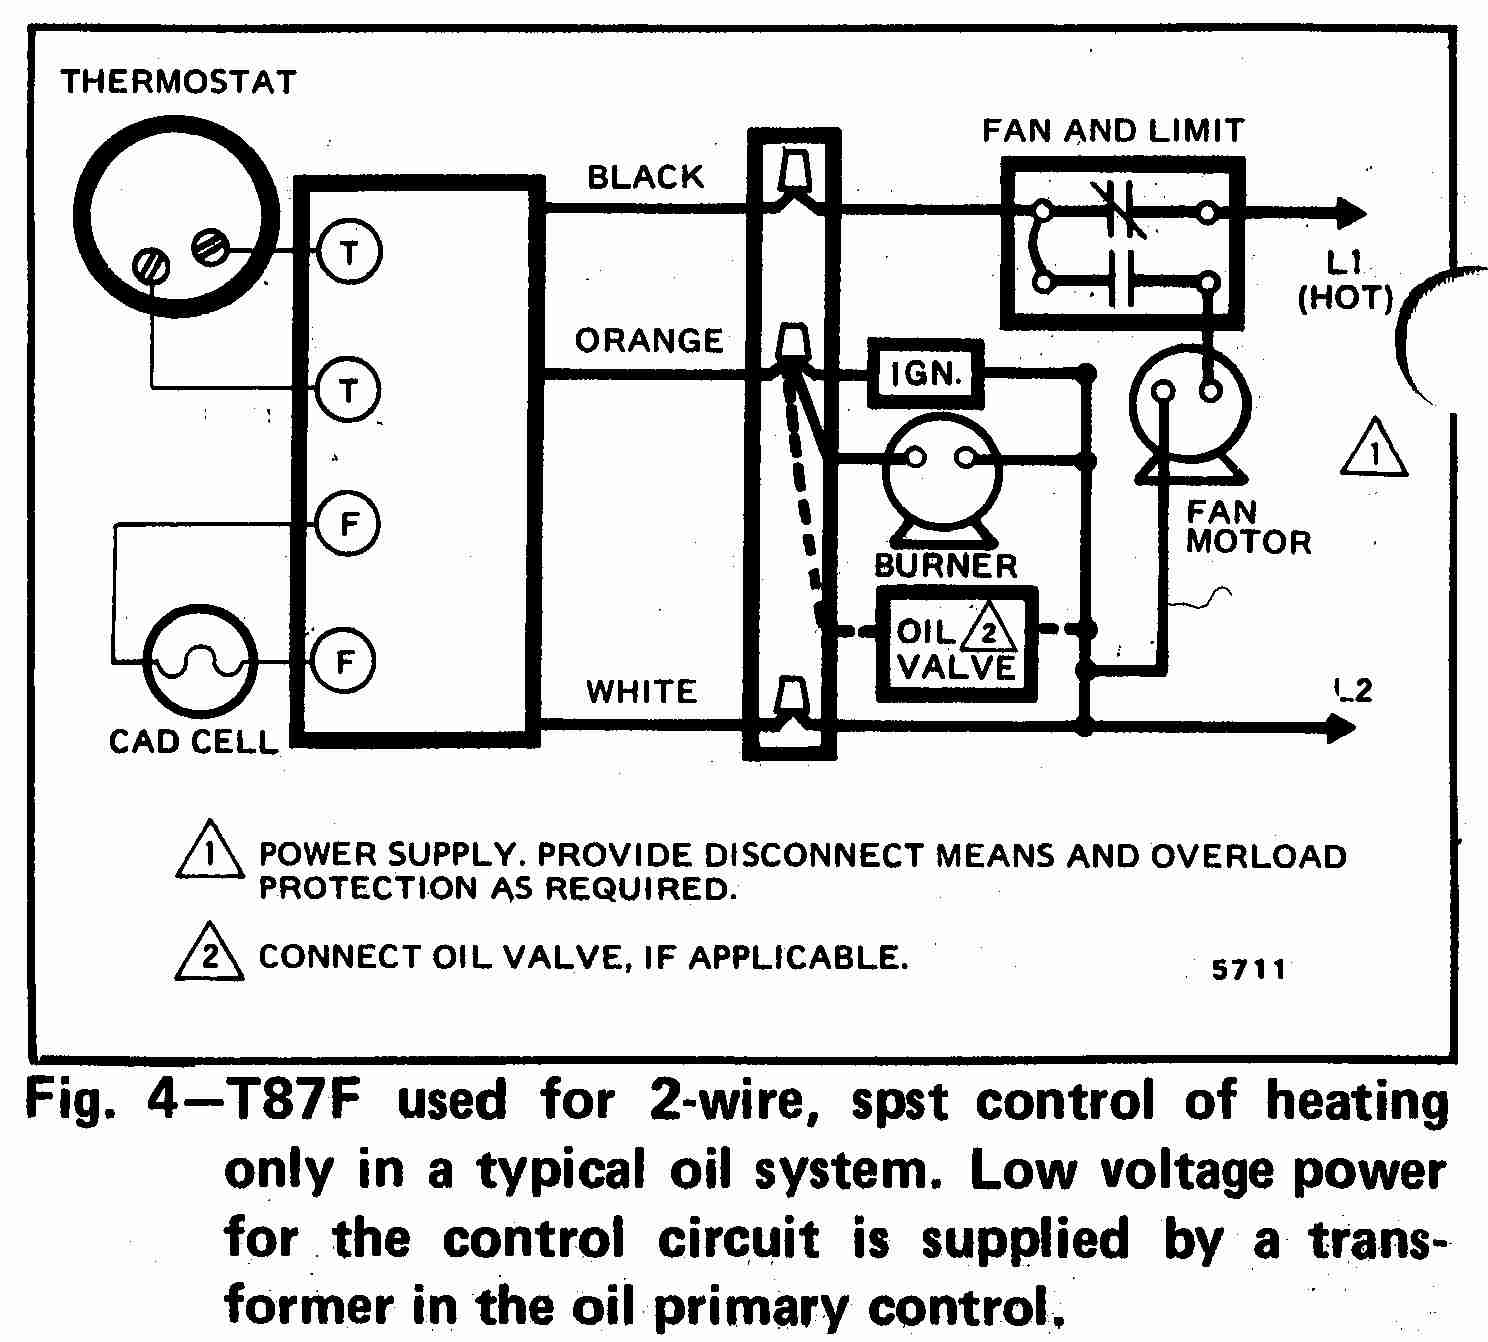 TT_T87F_0002_2W_DJF room thermostat wiring diagrams for hvac systems furnace wiring diagrams at gsmportal.co